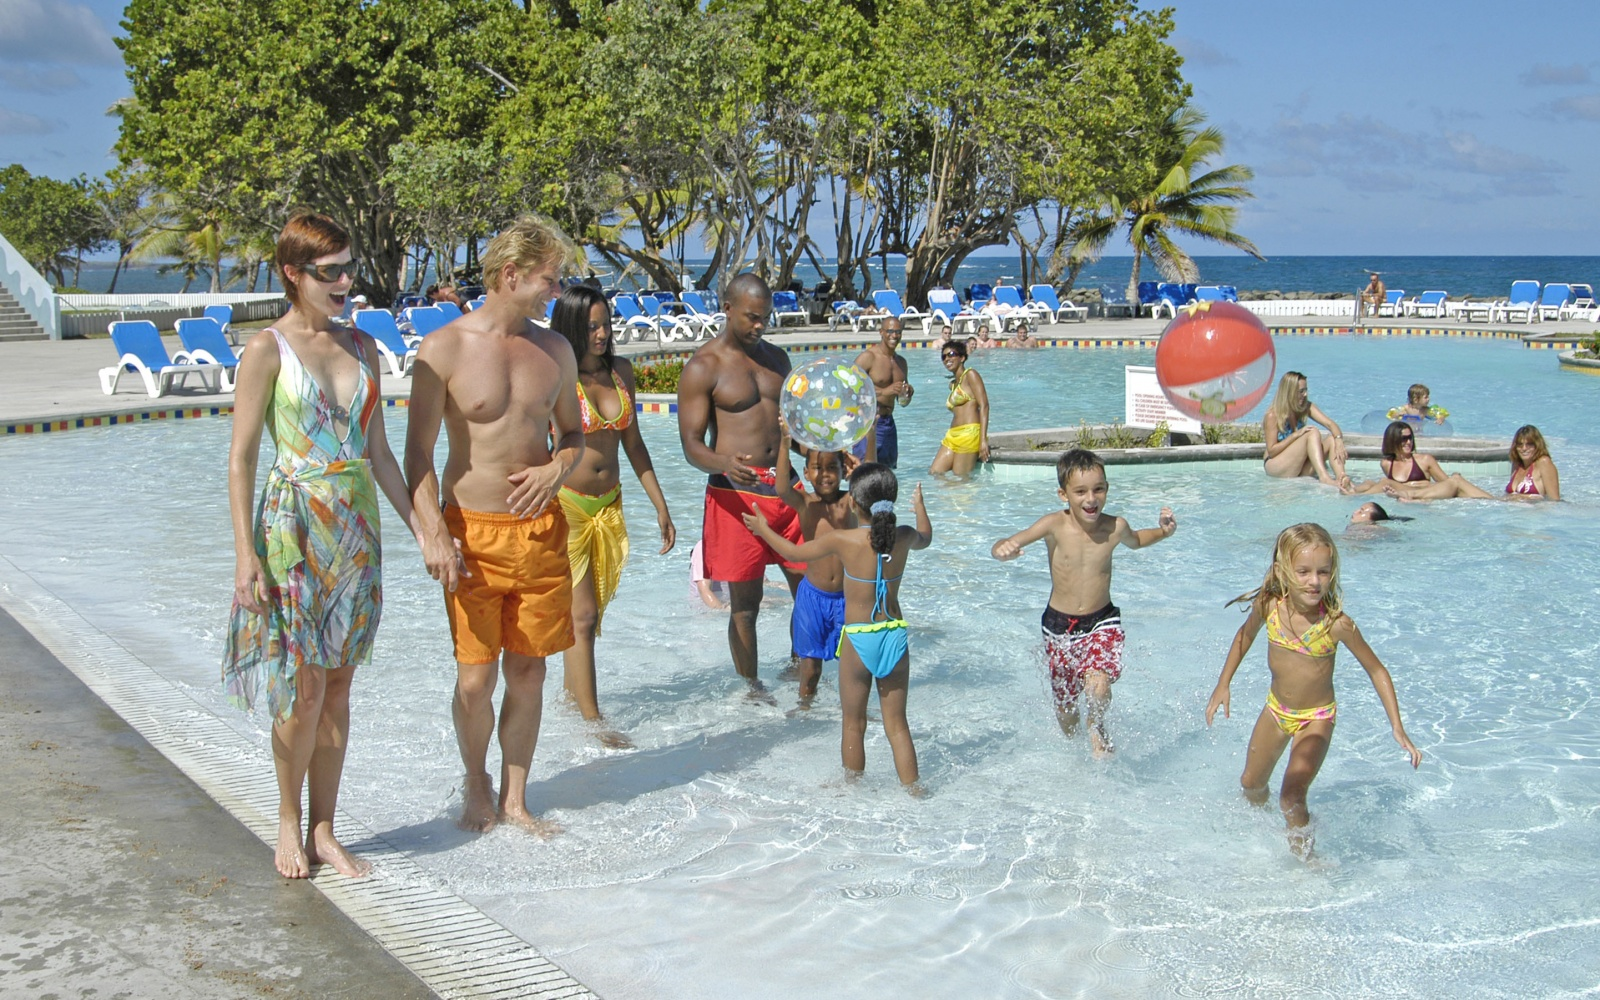 Top 10 European resorts available for family vacations in the summer